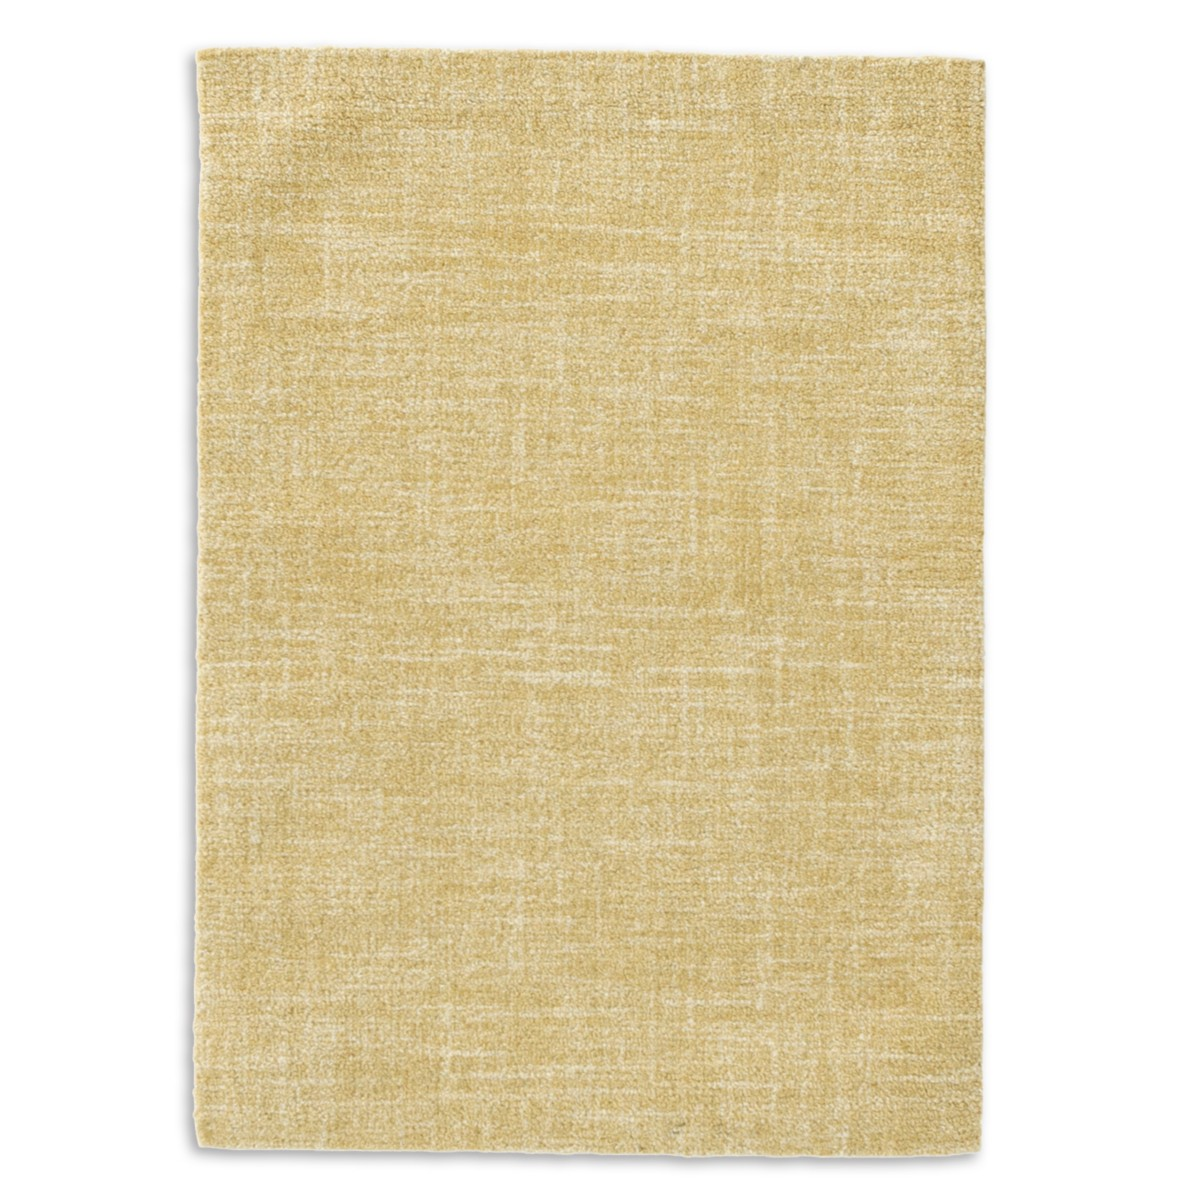 Crosshatch Wool Micro Hooked Rug - Gold